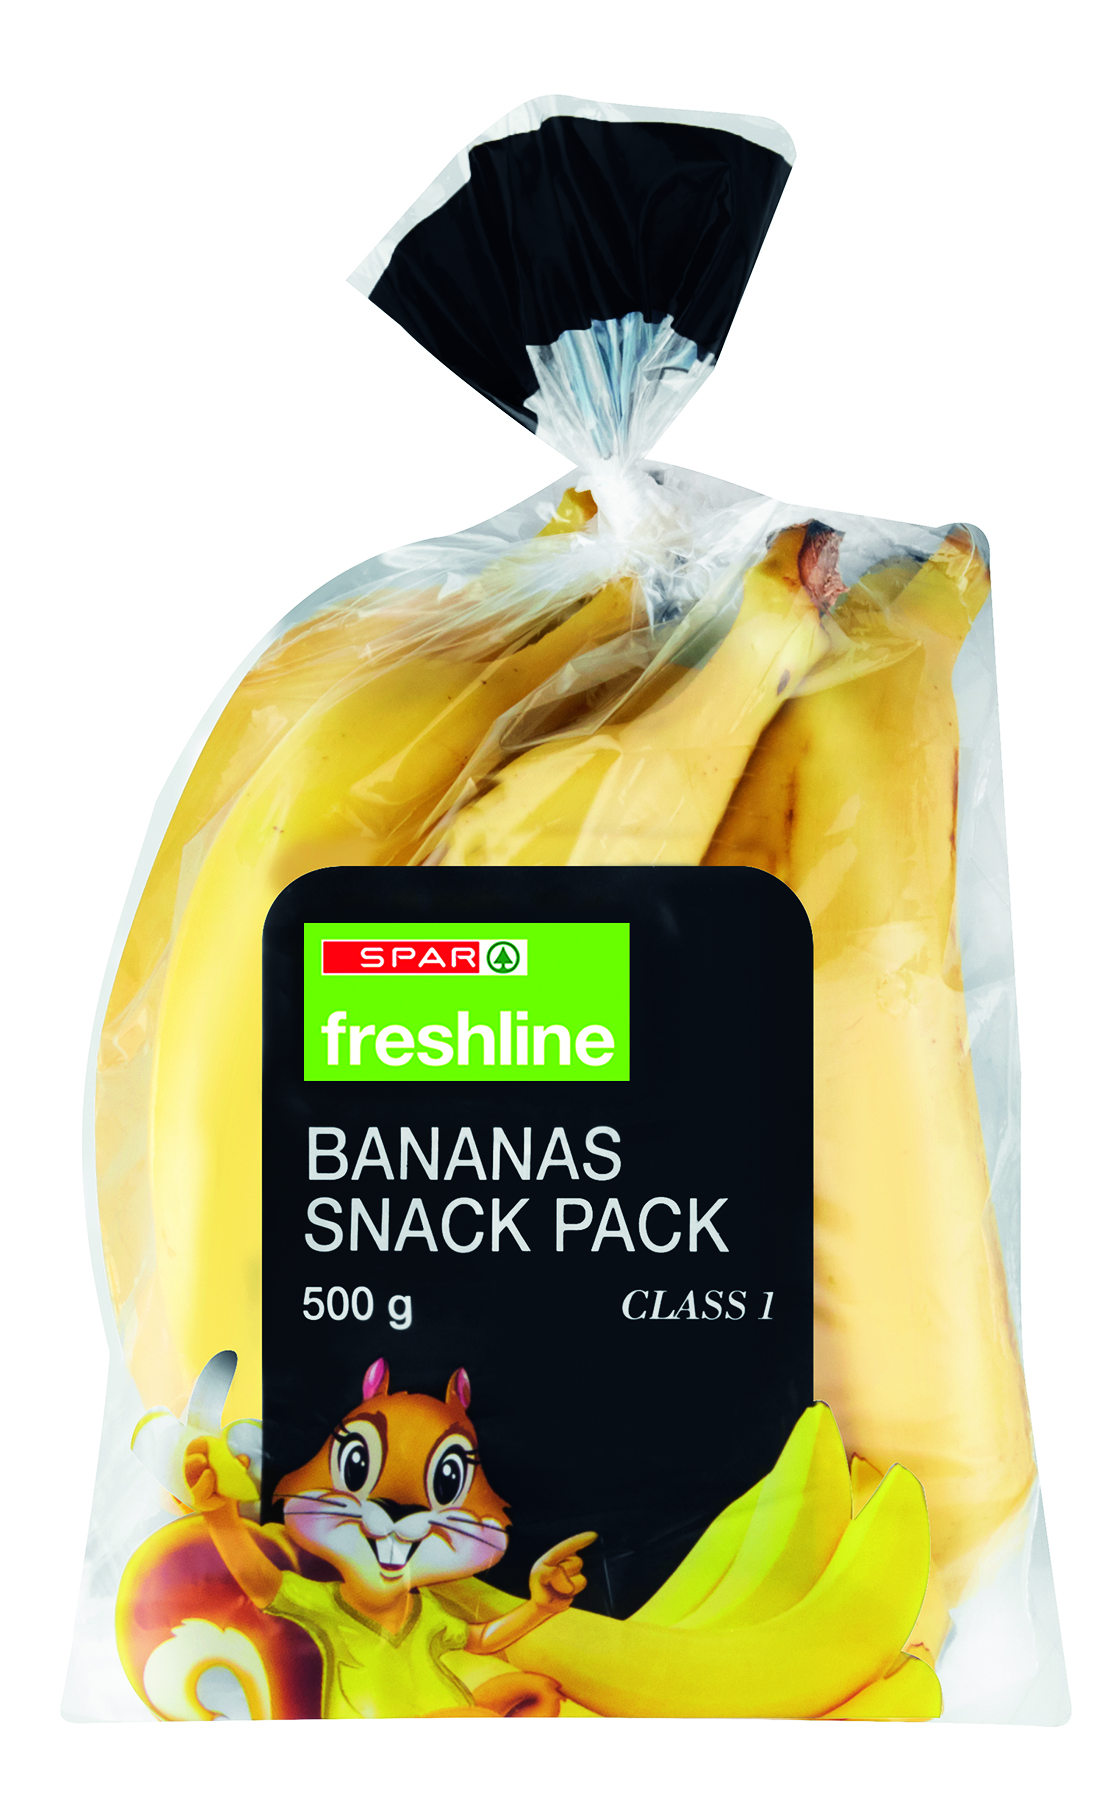 freshline bananas snack pack